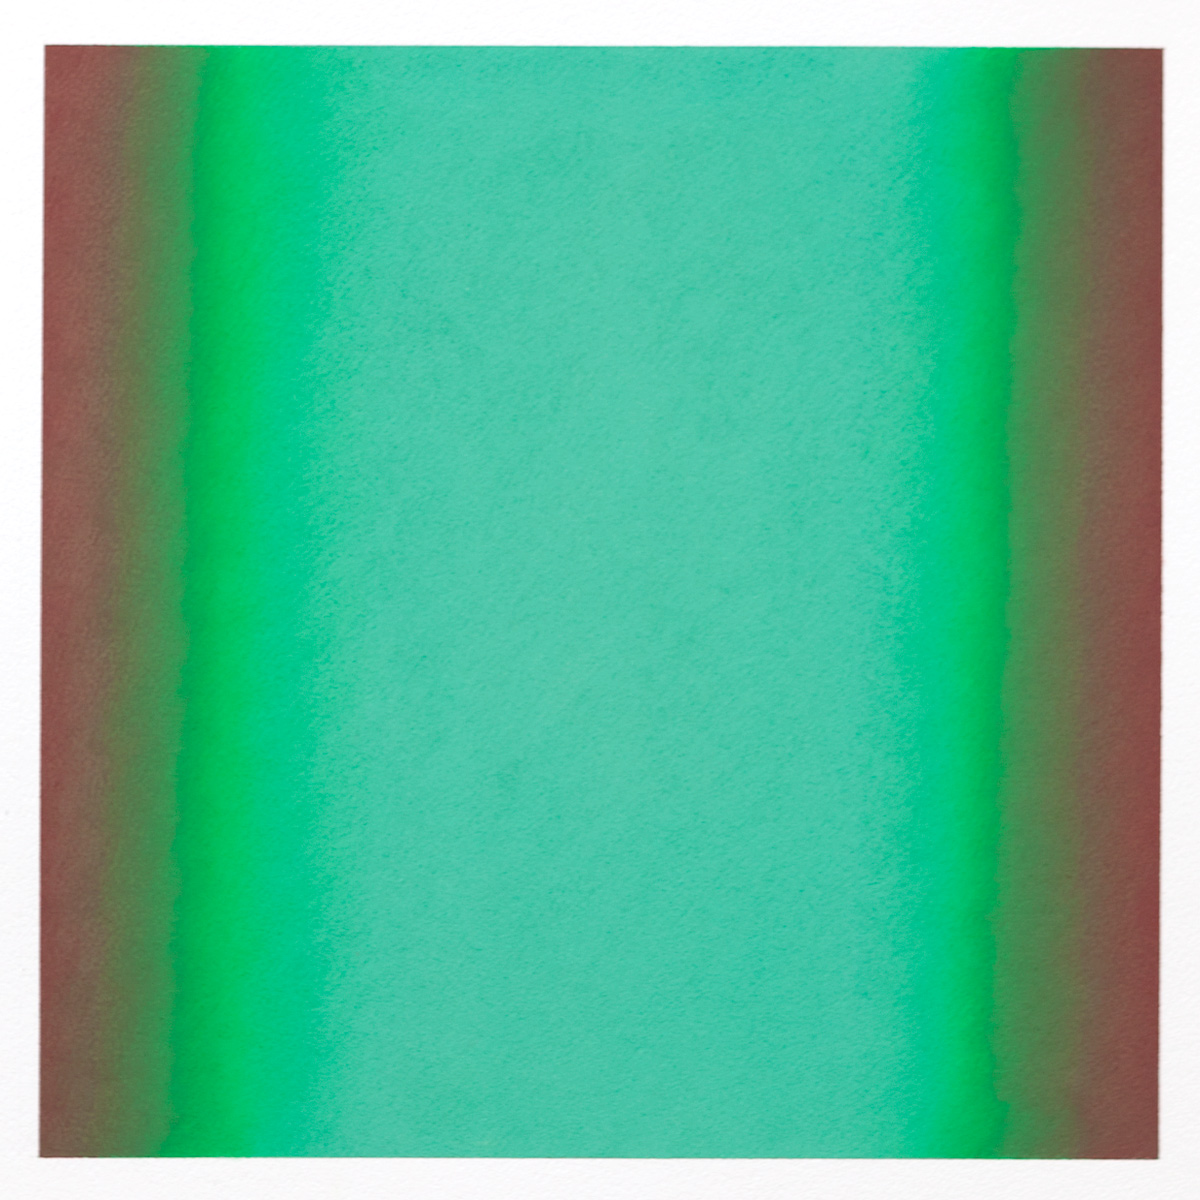 Counterpoint #15, 2012, pastel on paper, image 14 x 14 in. (36 x 36 cm.), sheet 30 x 22 in. (76 x 56 cm.)